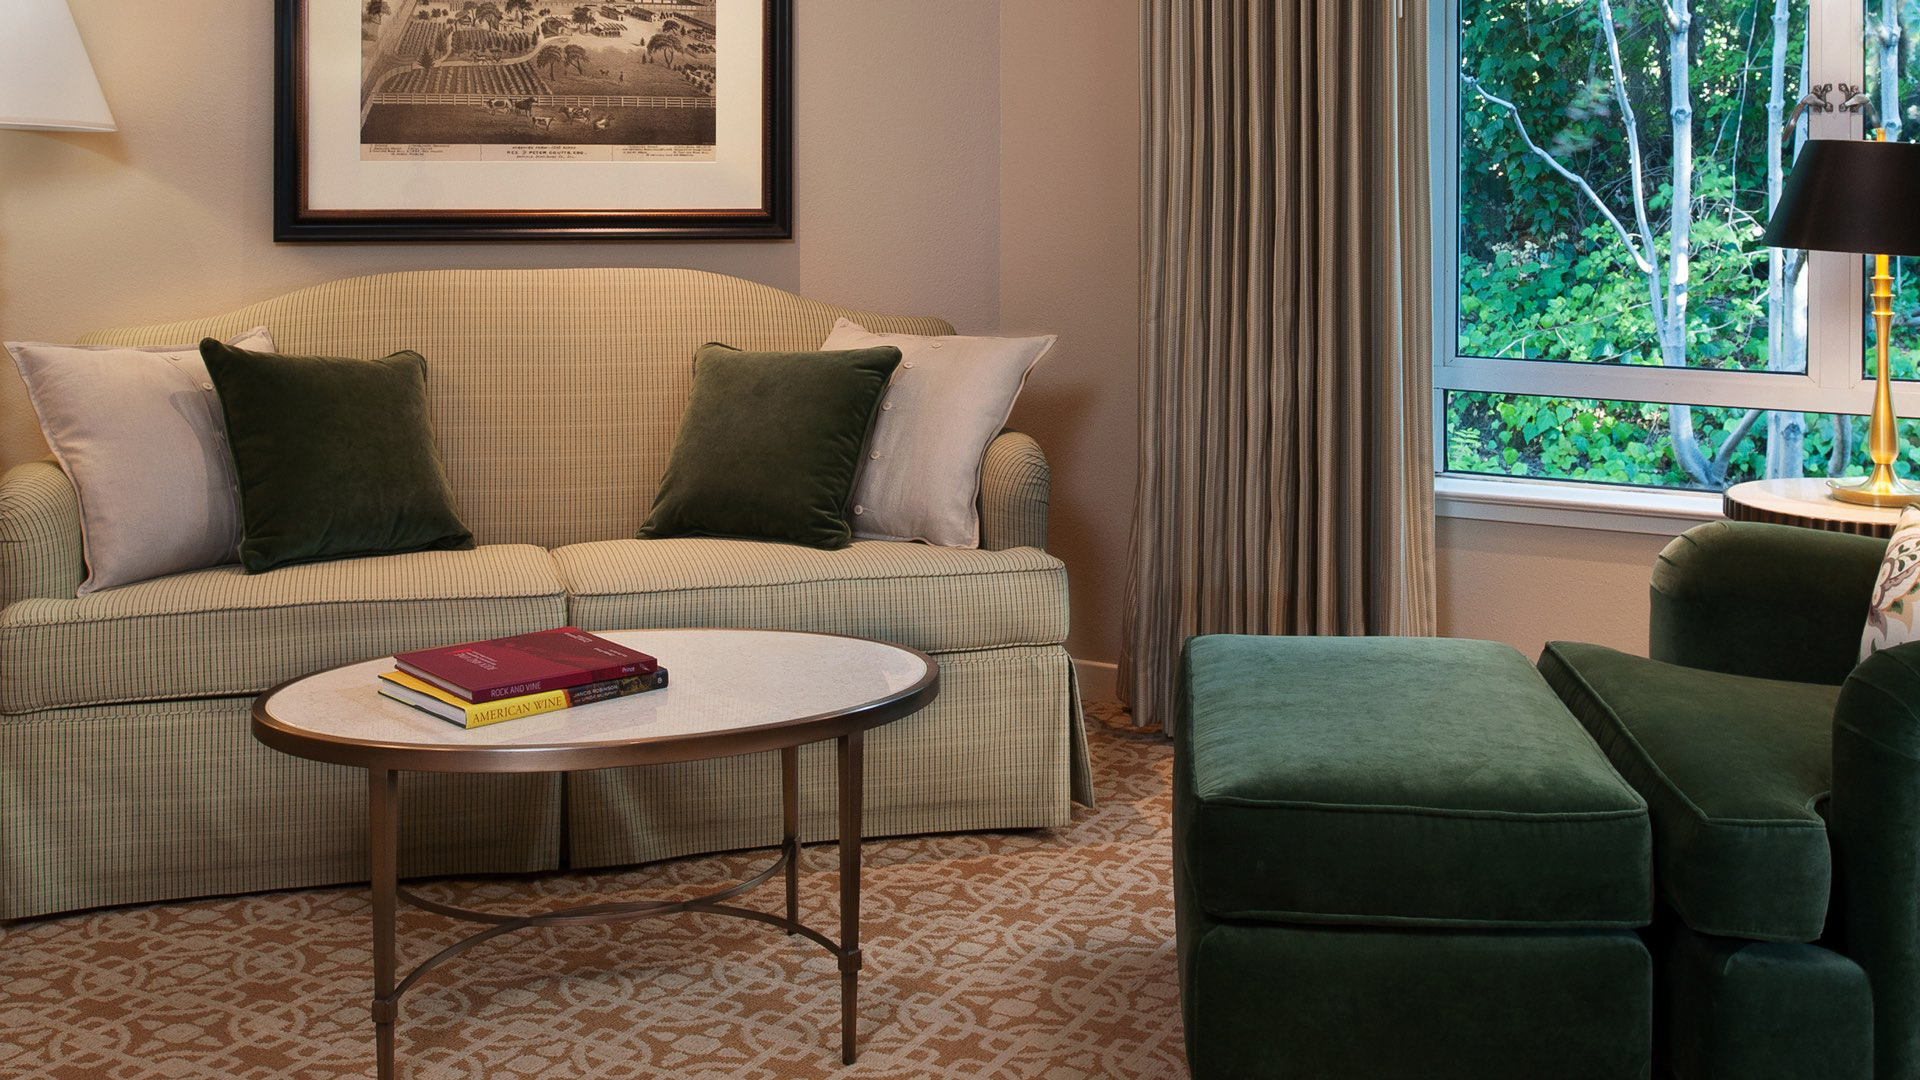 couch with center table and green chair